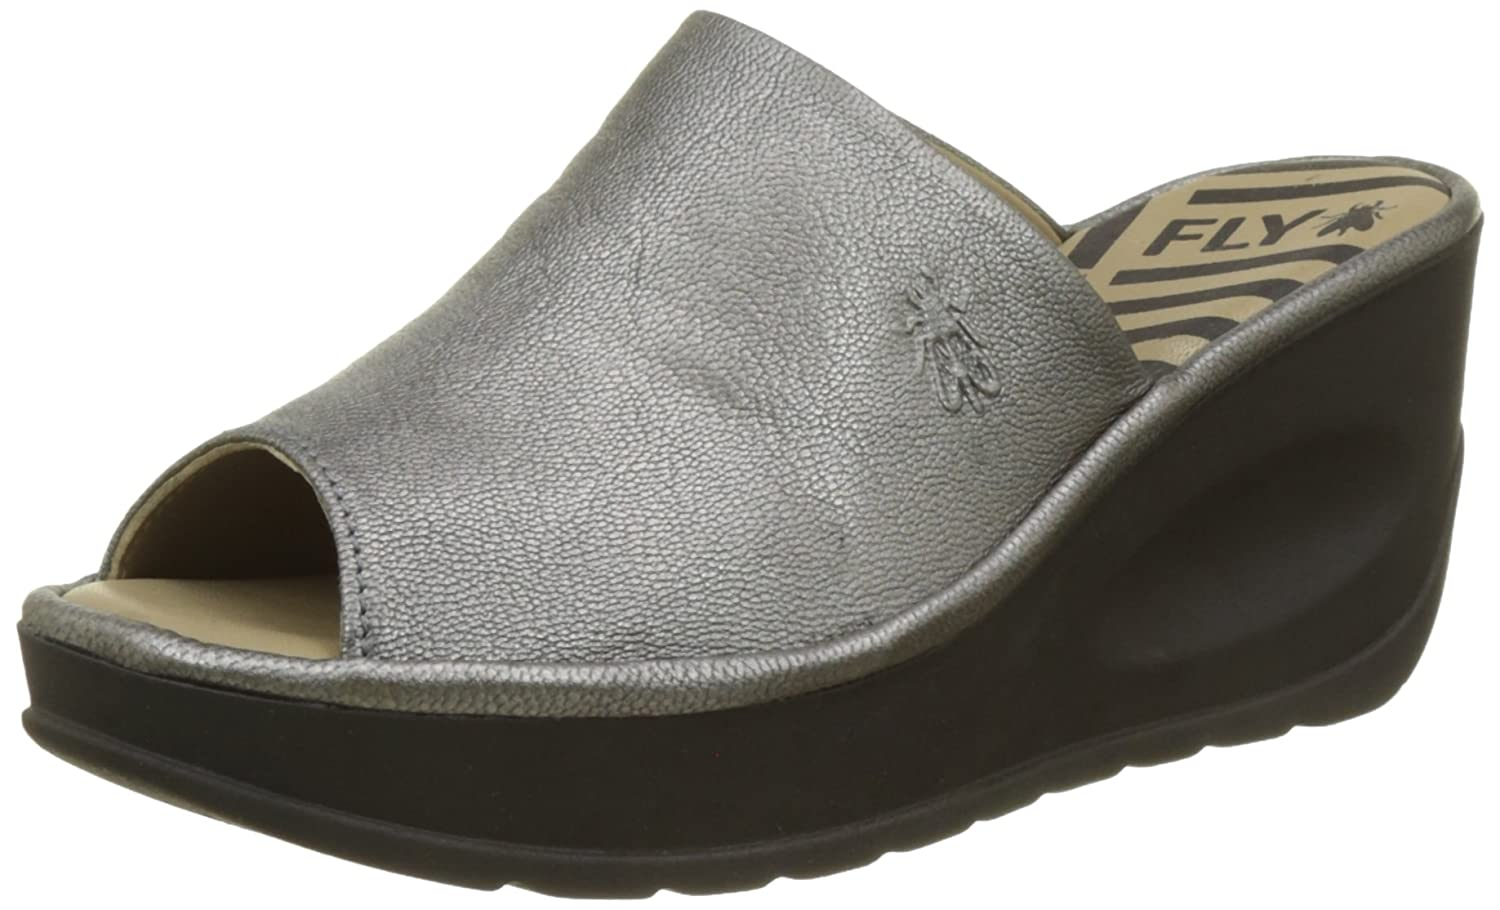 Silber (Lead) FLY London Damen Jamb865fly Pantoletten